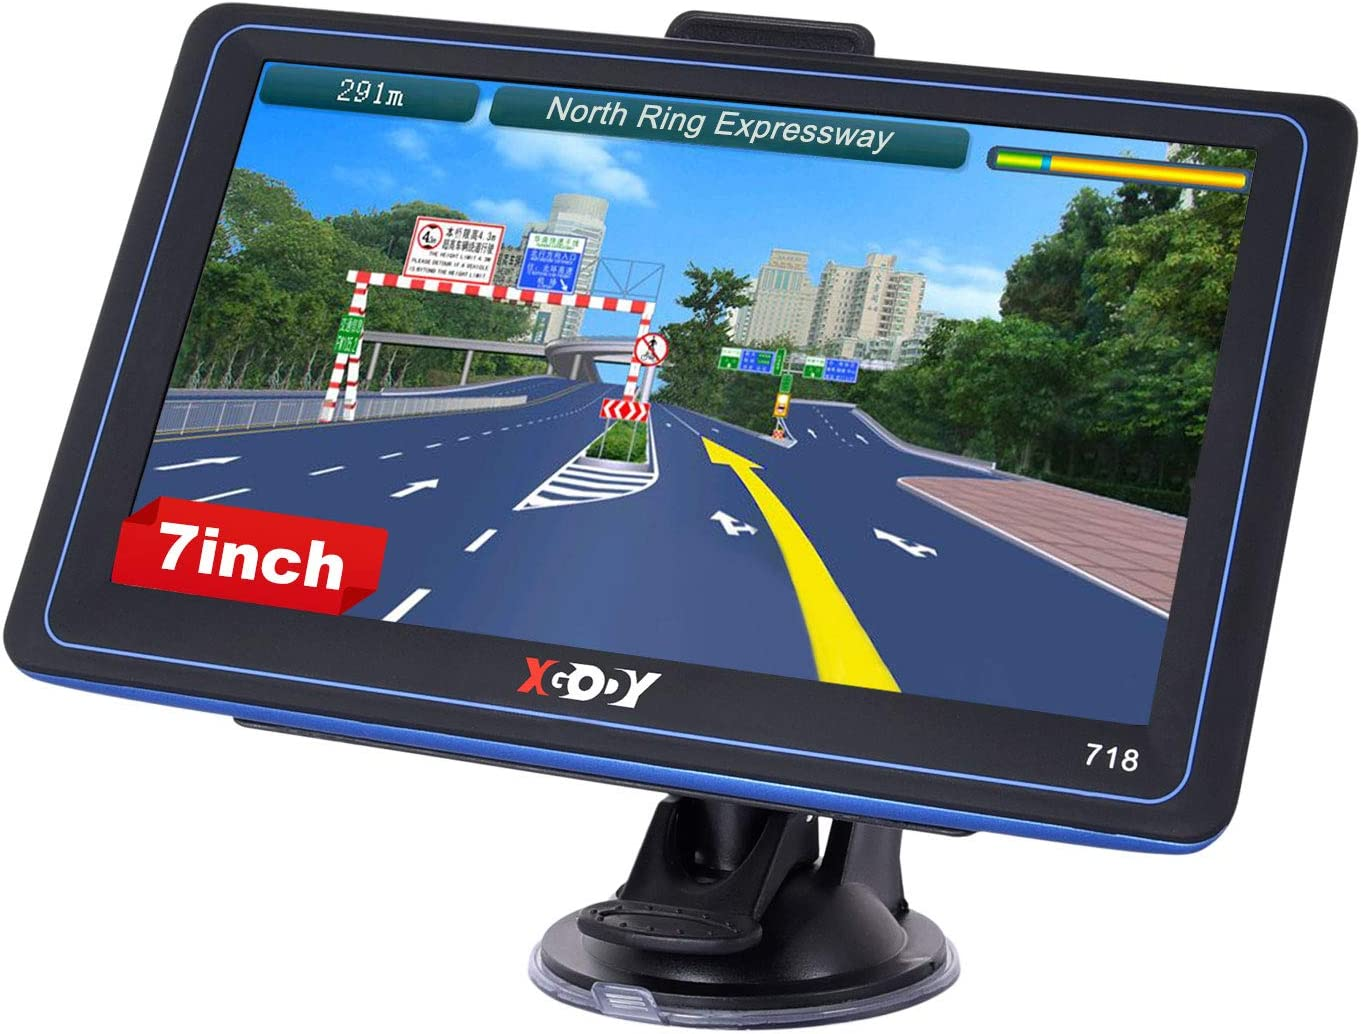 7 inch GPS Navigation for Car Xgody The Latest 2020 North American Map Satellite Navigation System, Truck GPS with Voice Turn Direction Guidance,Poi and Speed Camera Warning Free Lifetime Map Updates